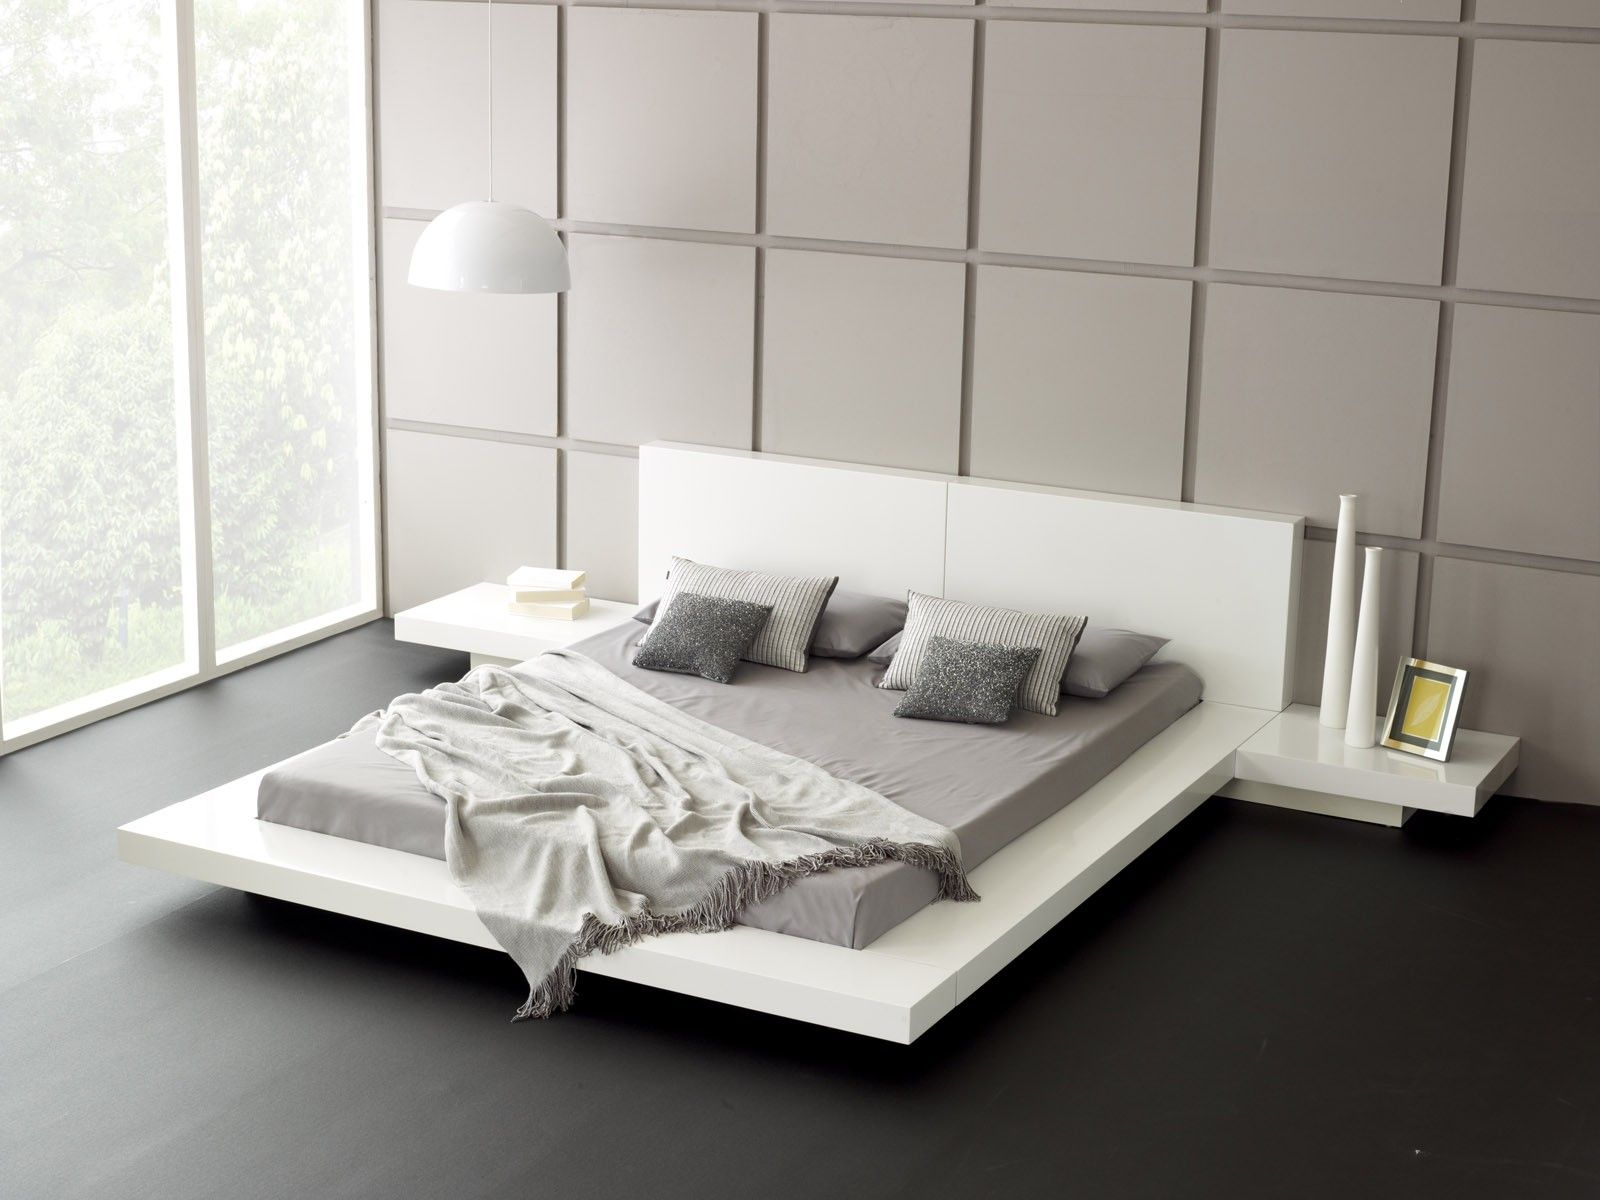 White and Grey Bedroom Ideas  Transforming Your Boring Room into Something  Special. Modern Bedroom FurnitureModern ...